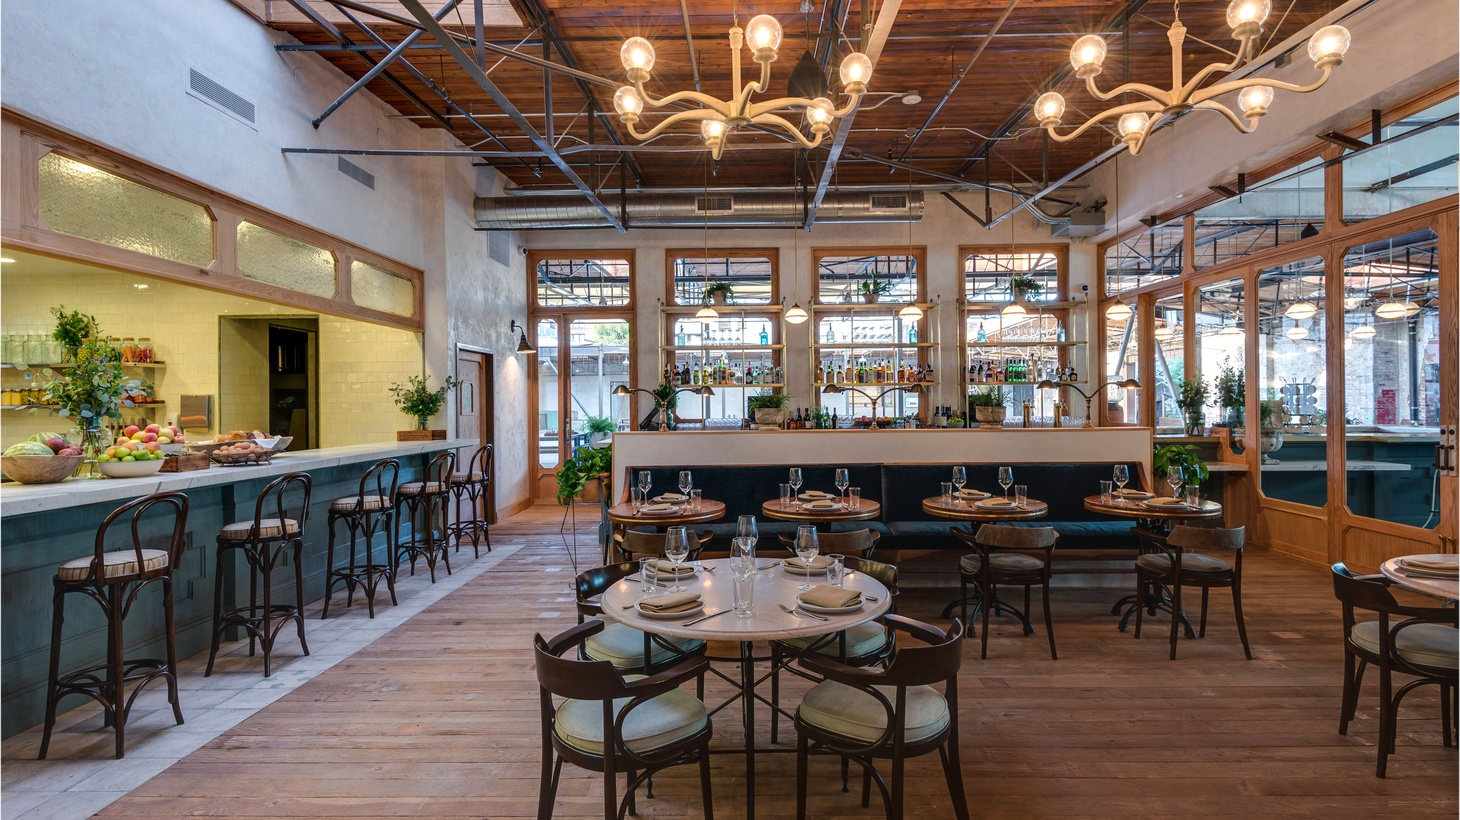 LA Times food critic Jonathan Gold enjoys his fill of Southern cooking at Manuela in Downtown LA's Arts District.